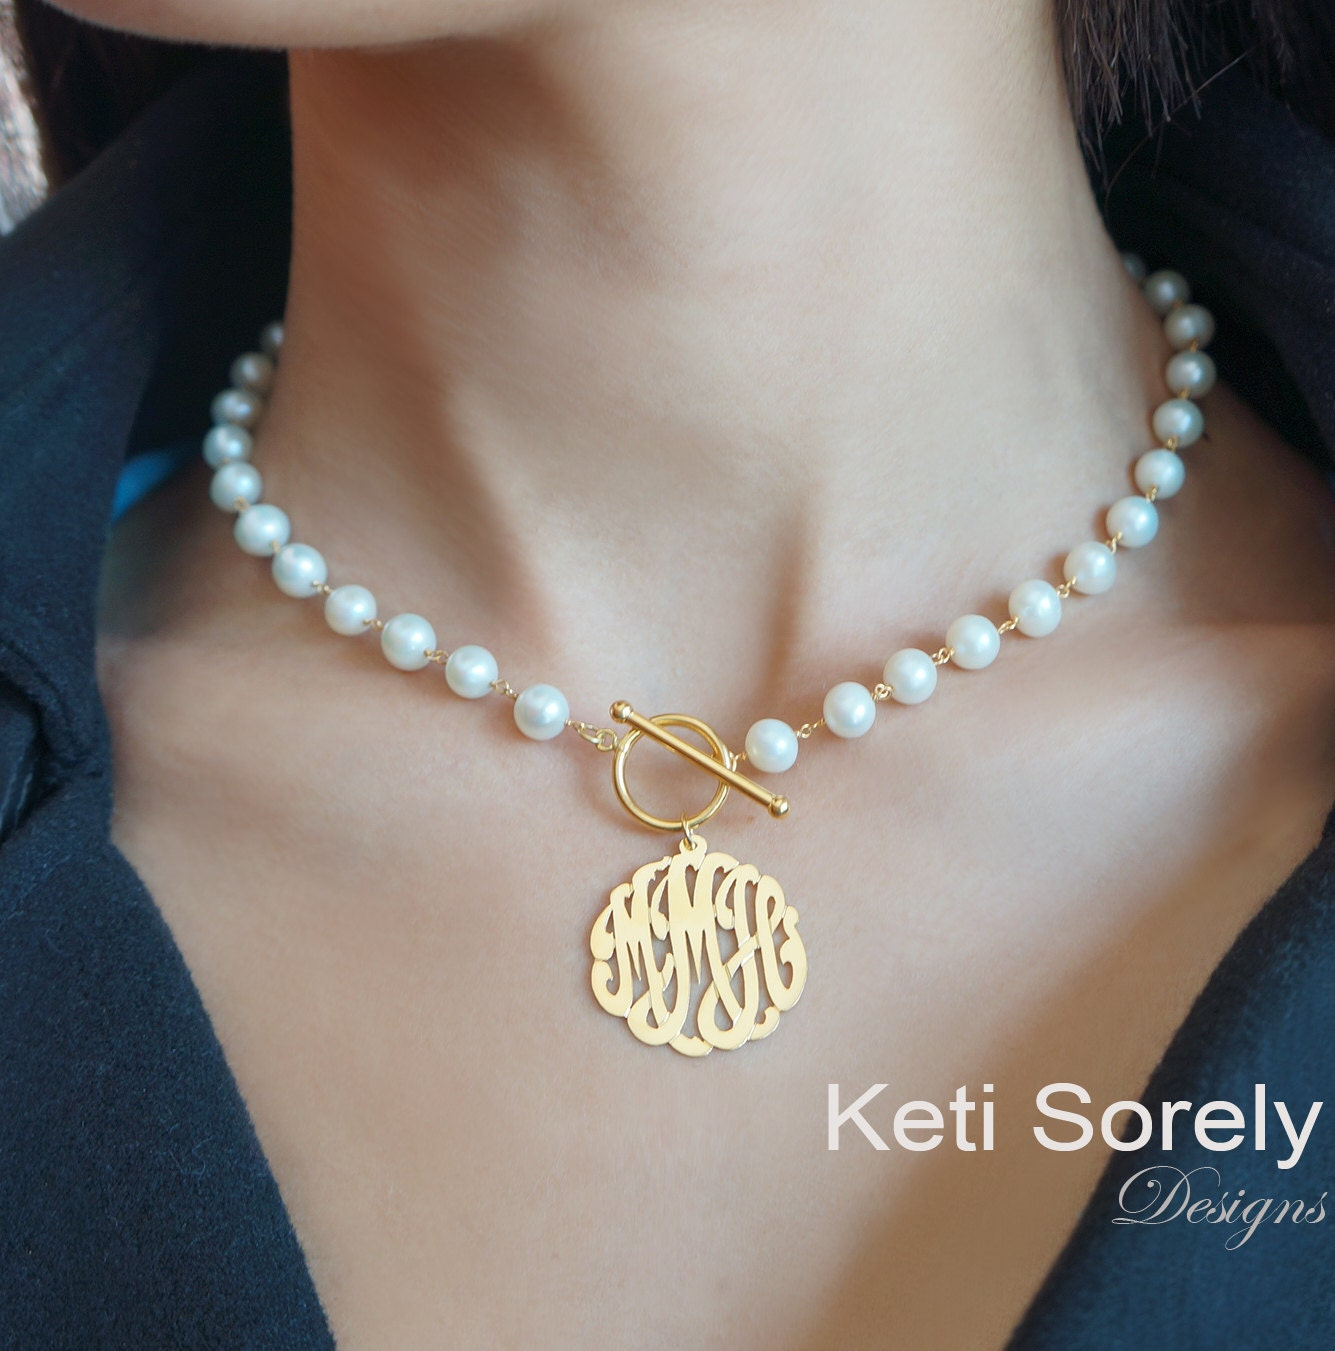 ff4ea2fc973df Pearl Necklace with Monogrammed Initials Charm - Freshwater White Pearls  And Toggle Clasp, Sterling Silver, Yellow Gold, Rose Gold